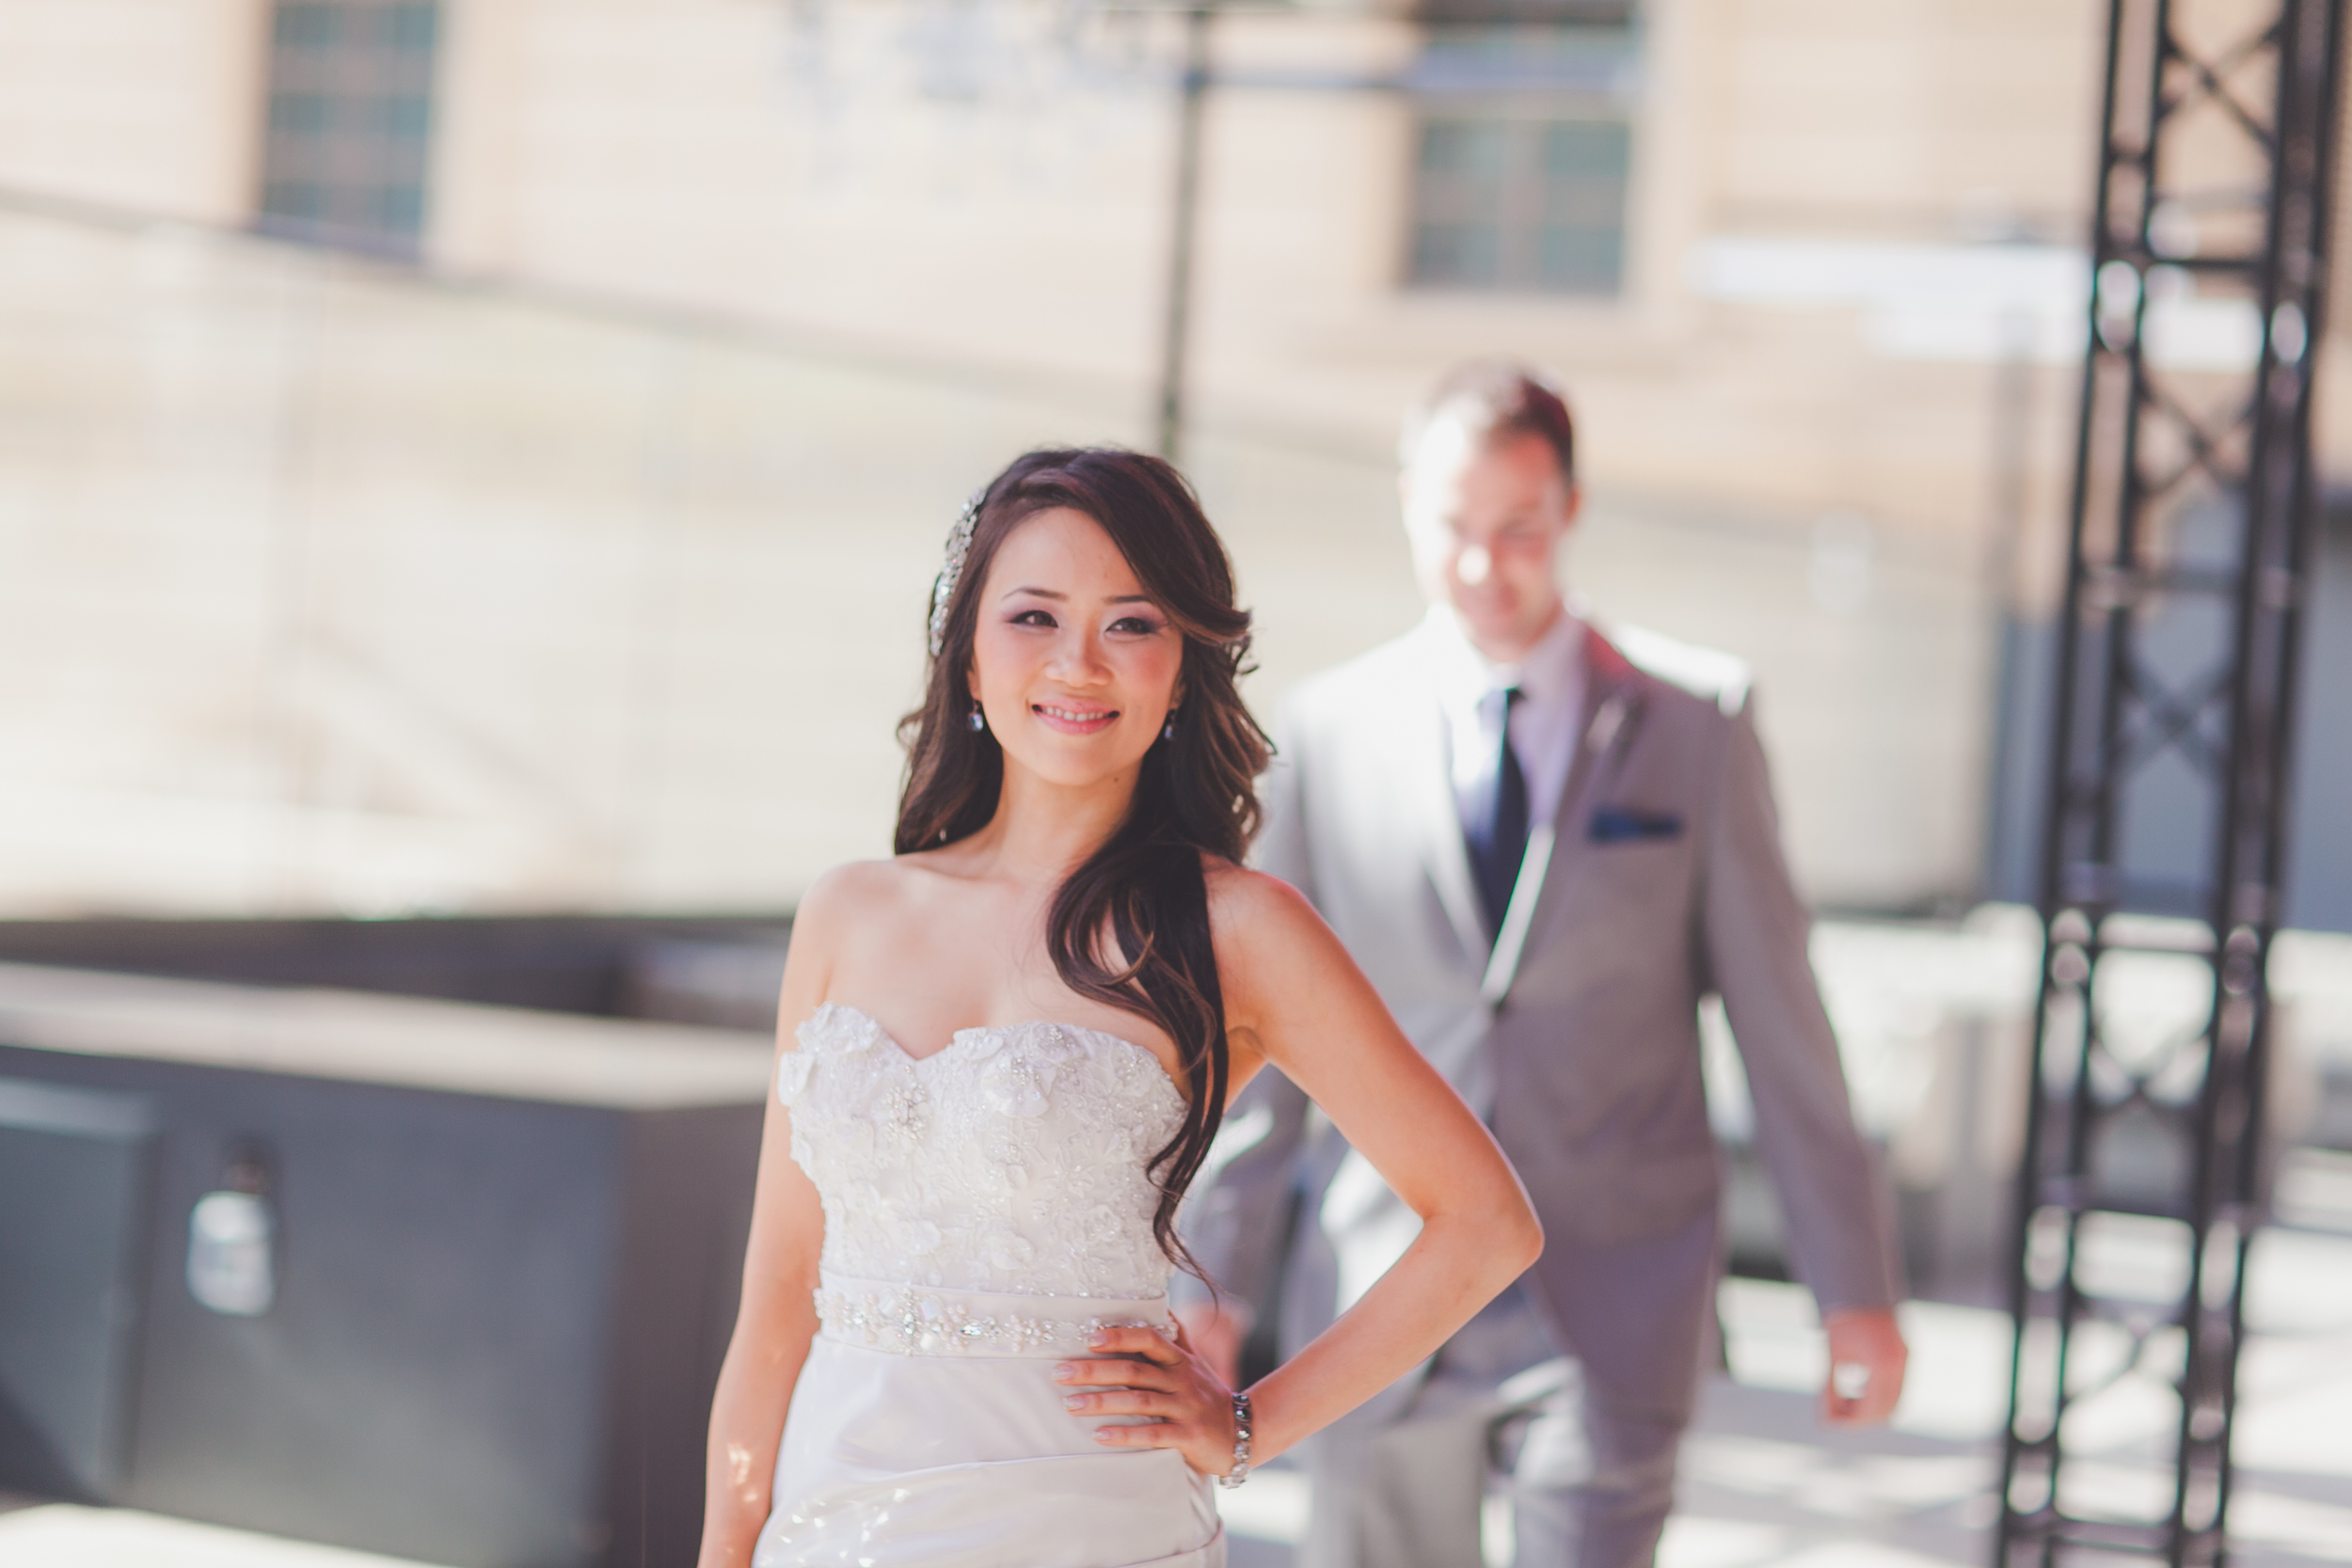 First Look - Our bride waits for her groom. Photo by Adam Trujillo.